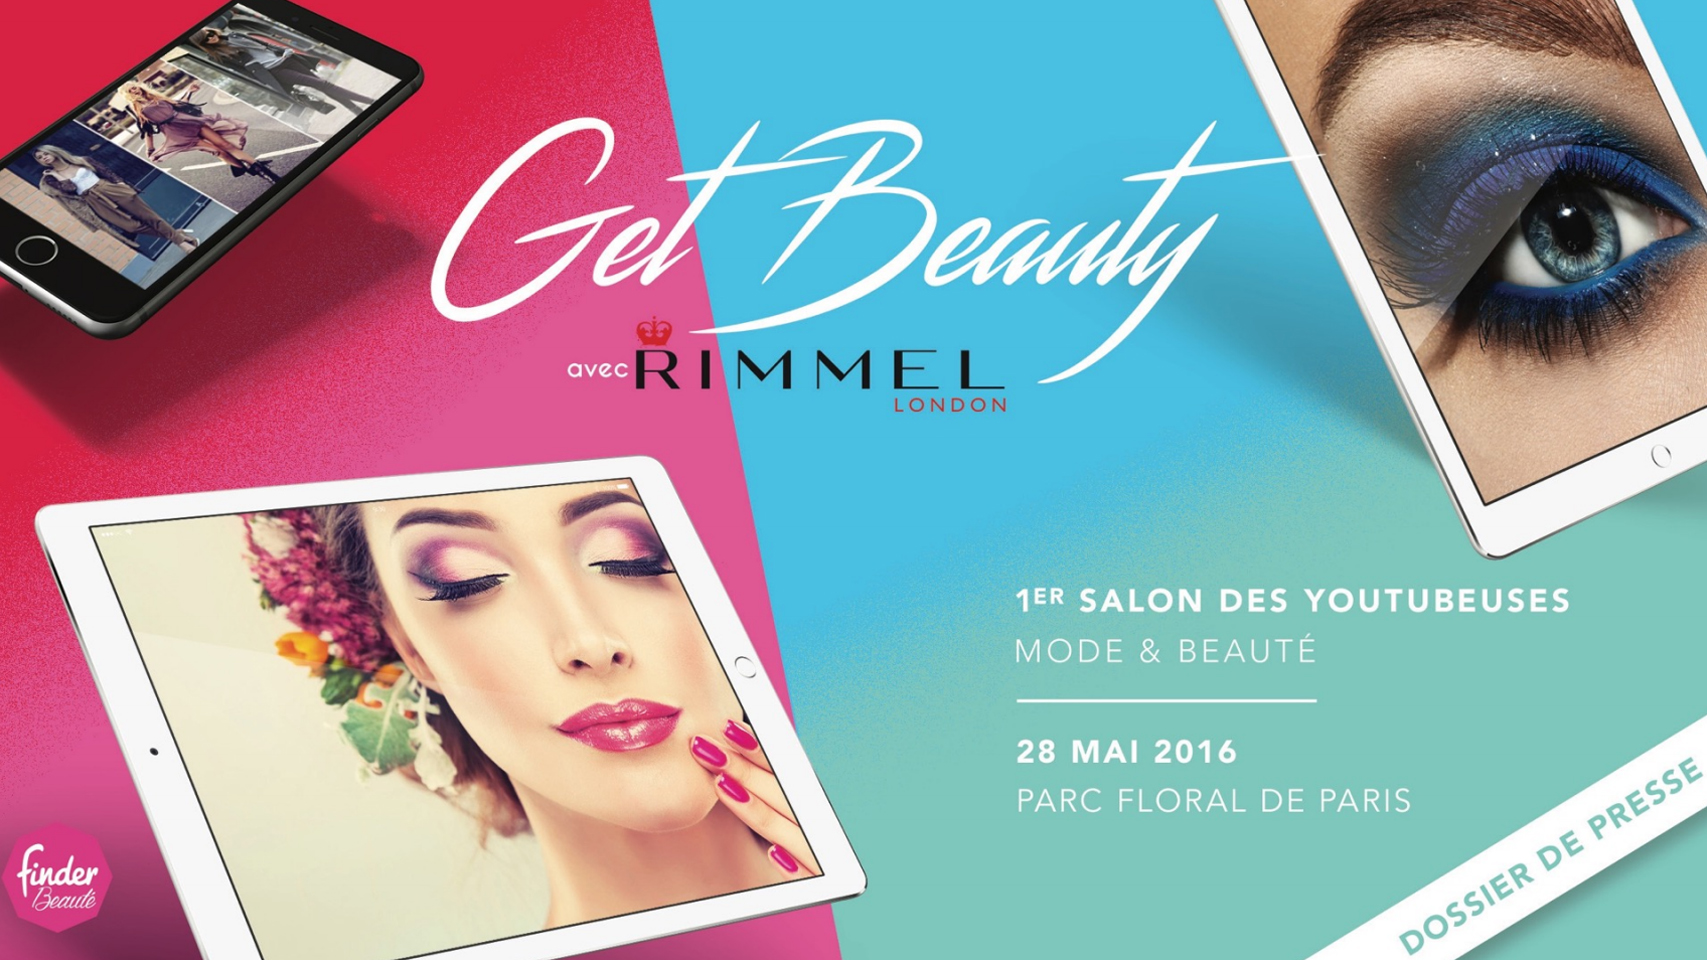 Getbeautyparis premier salon d di aux youtubeuse mode for Salon youtubeuse